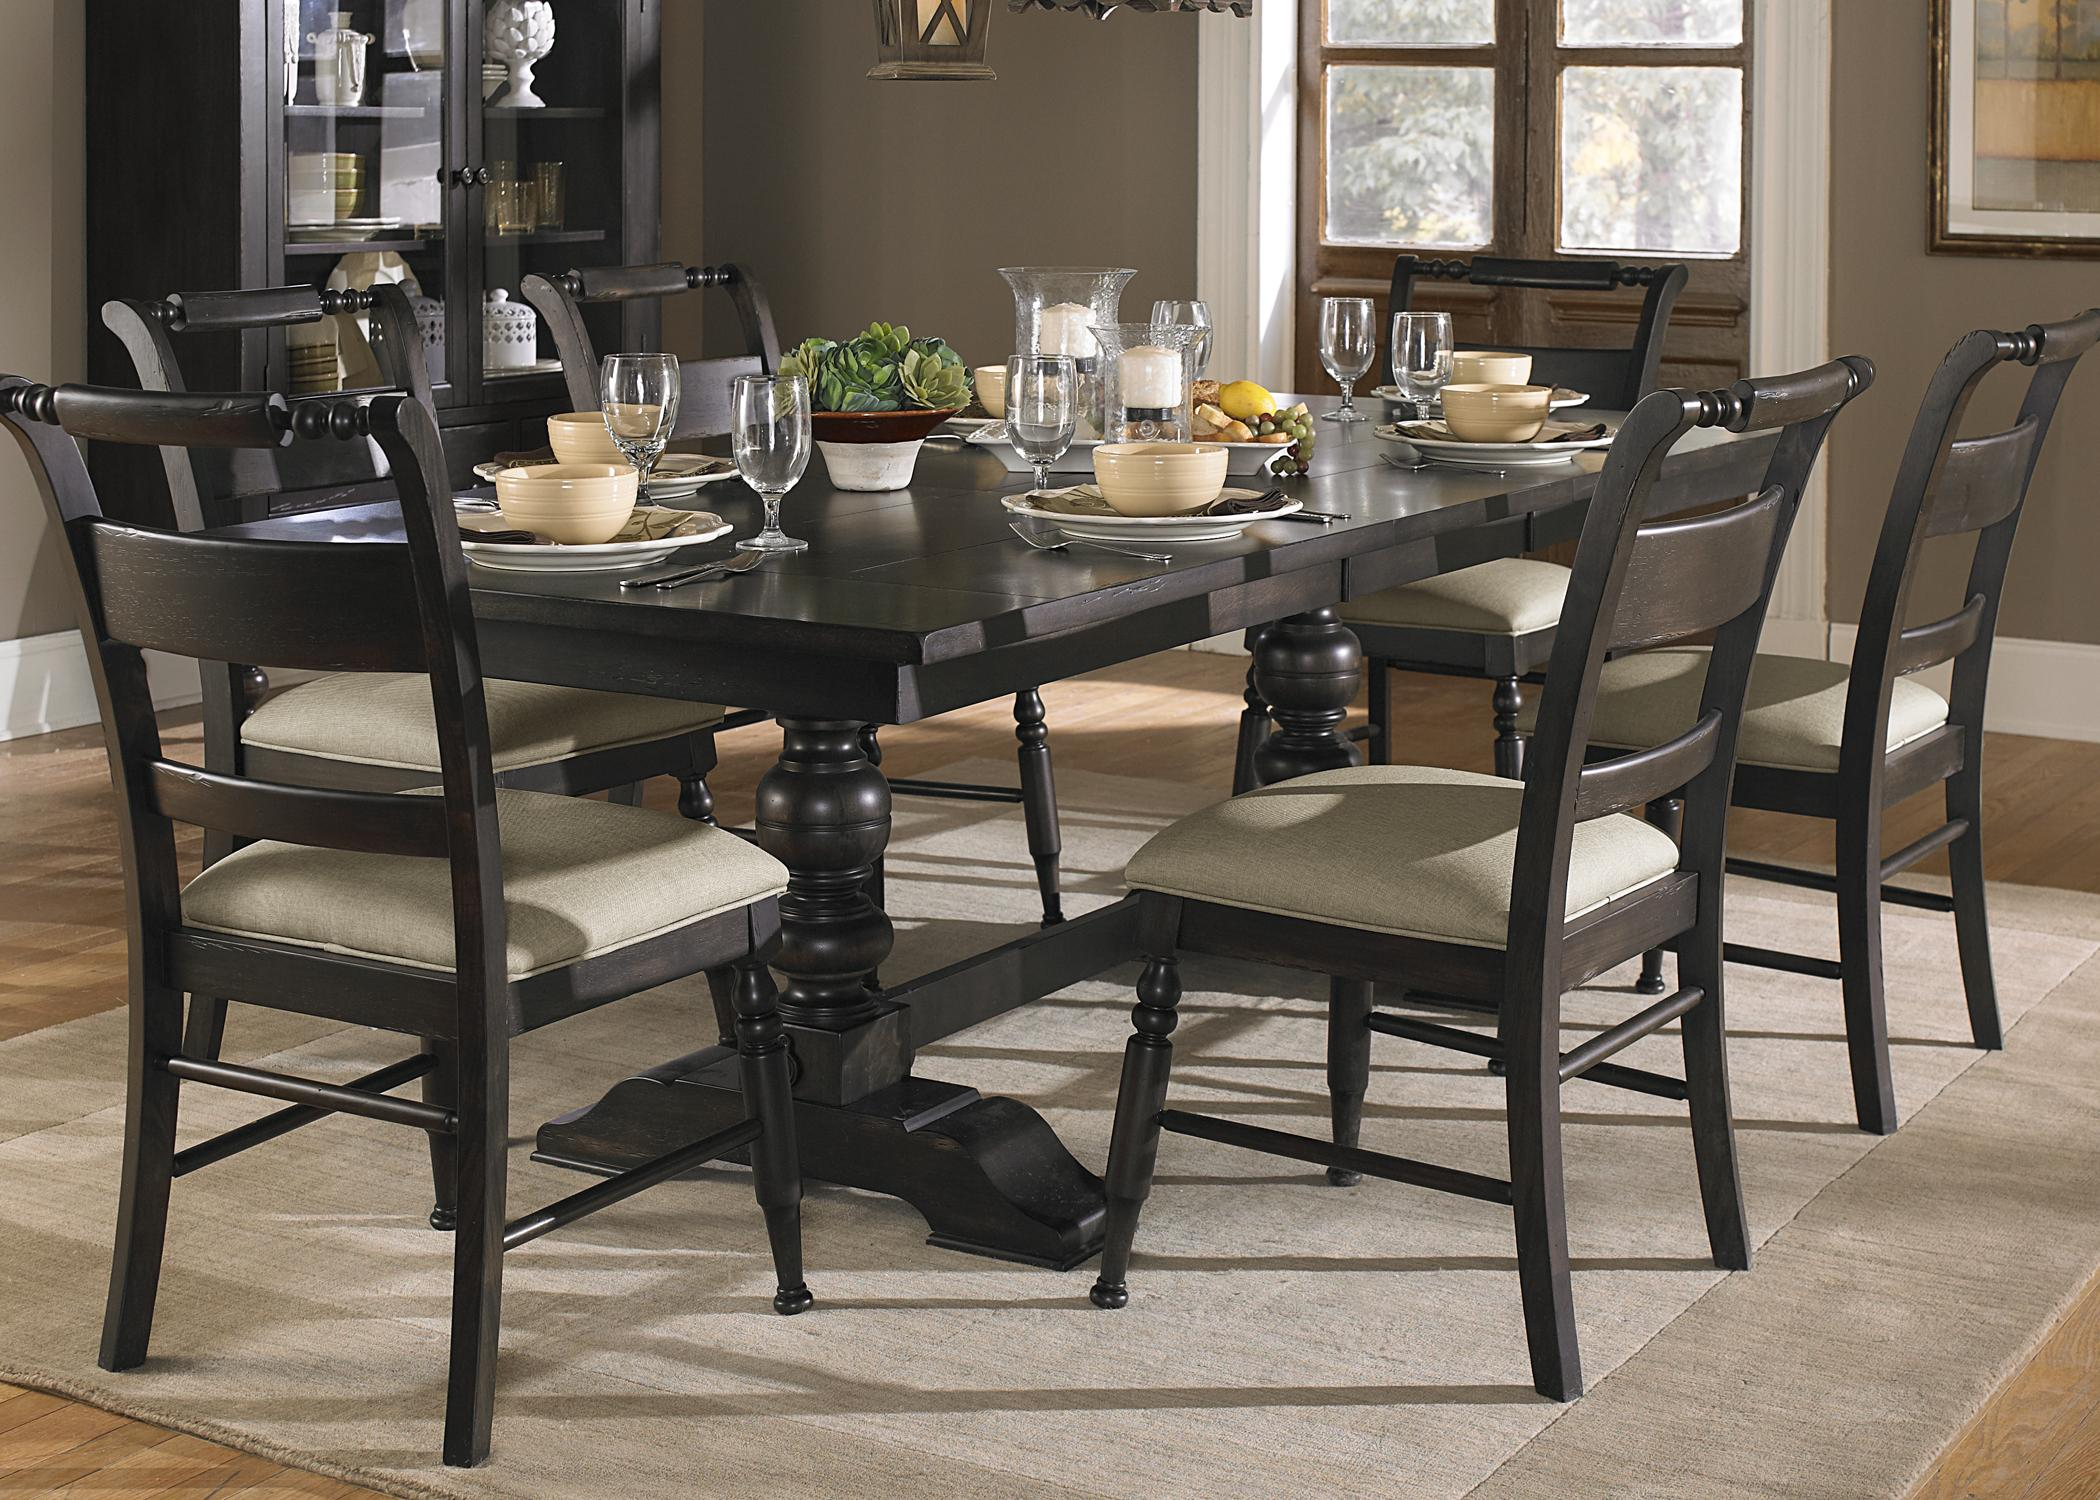 7 piece black dining room set. 7 Piece Trestle Dining Room Table Set by Liberty Furniture  Wolf